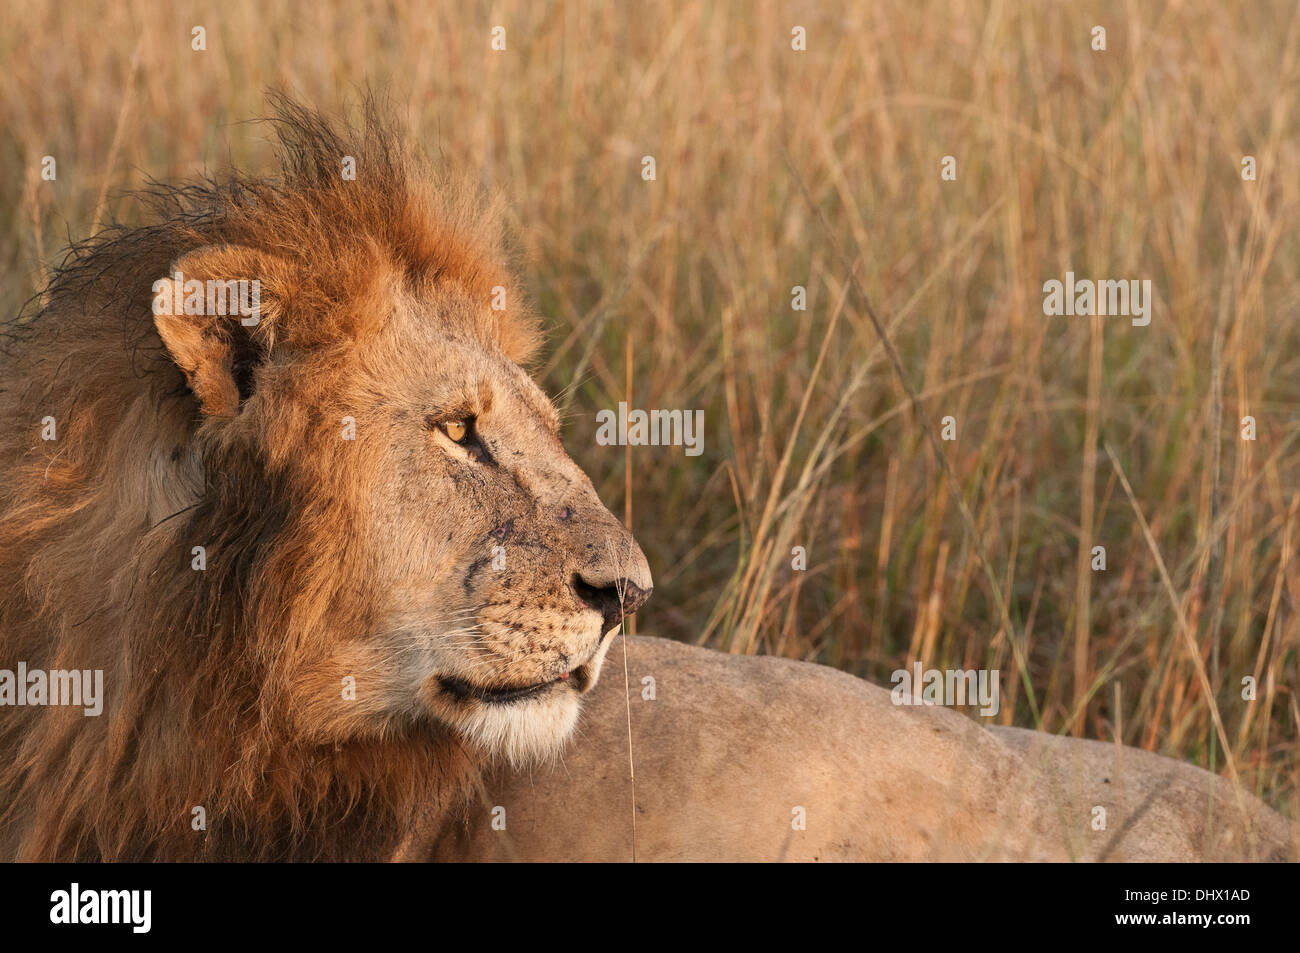 Male Lion awakes just after first light and peers into the distance as the sun rises and starts a new day in the Mara Kenya. - Stock Image